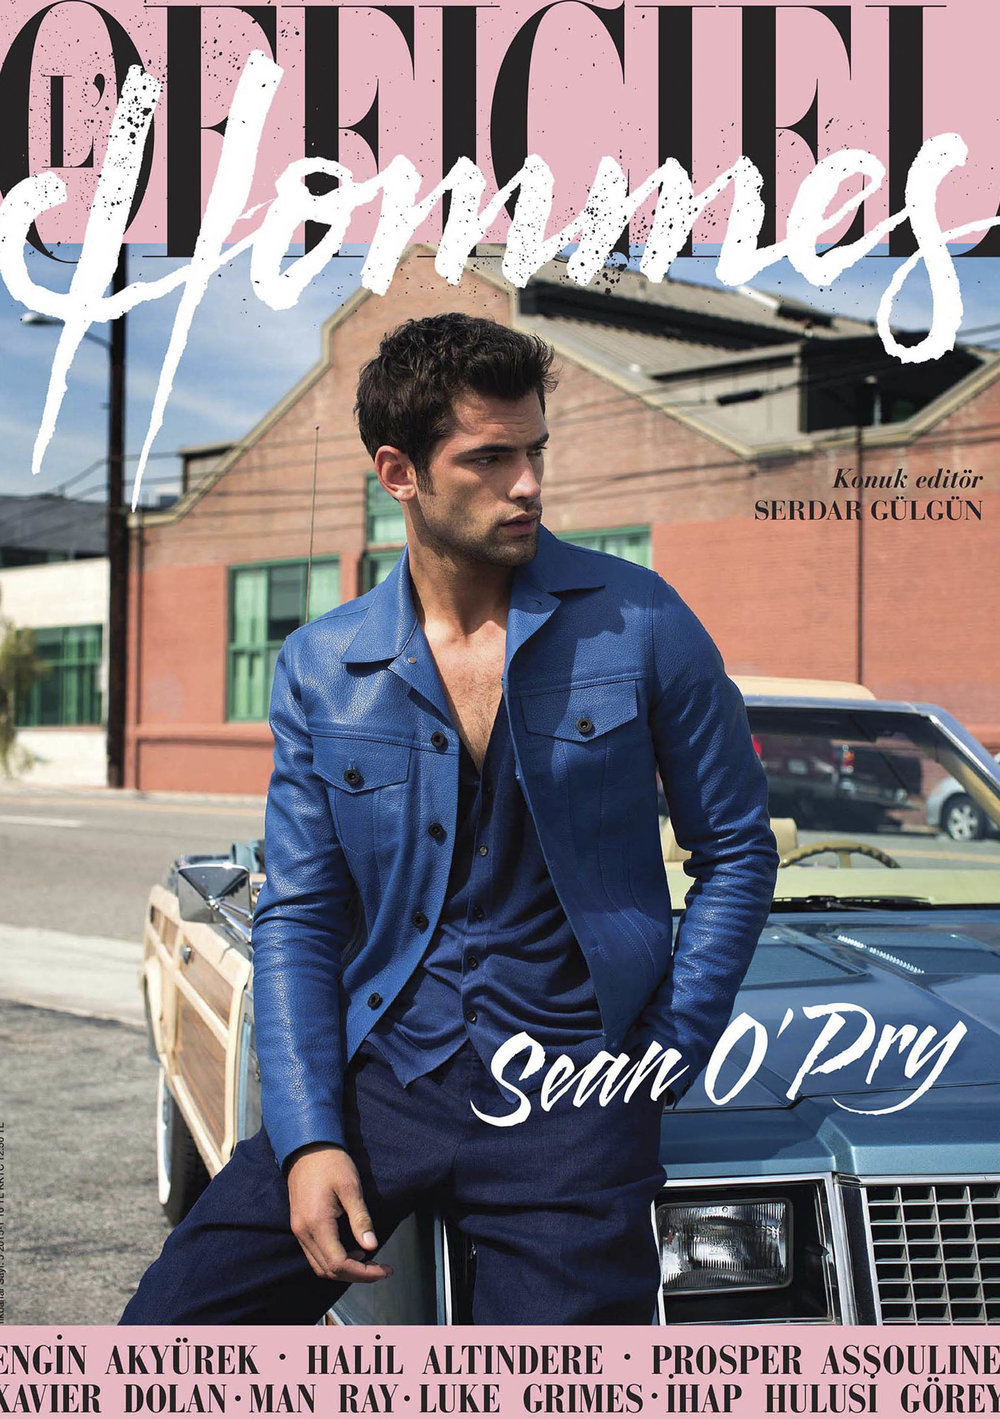 L'officiel HommesTurkey - Sean O'PRY 2015, April Issue Cover Story